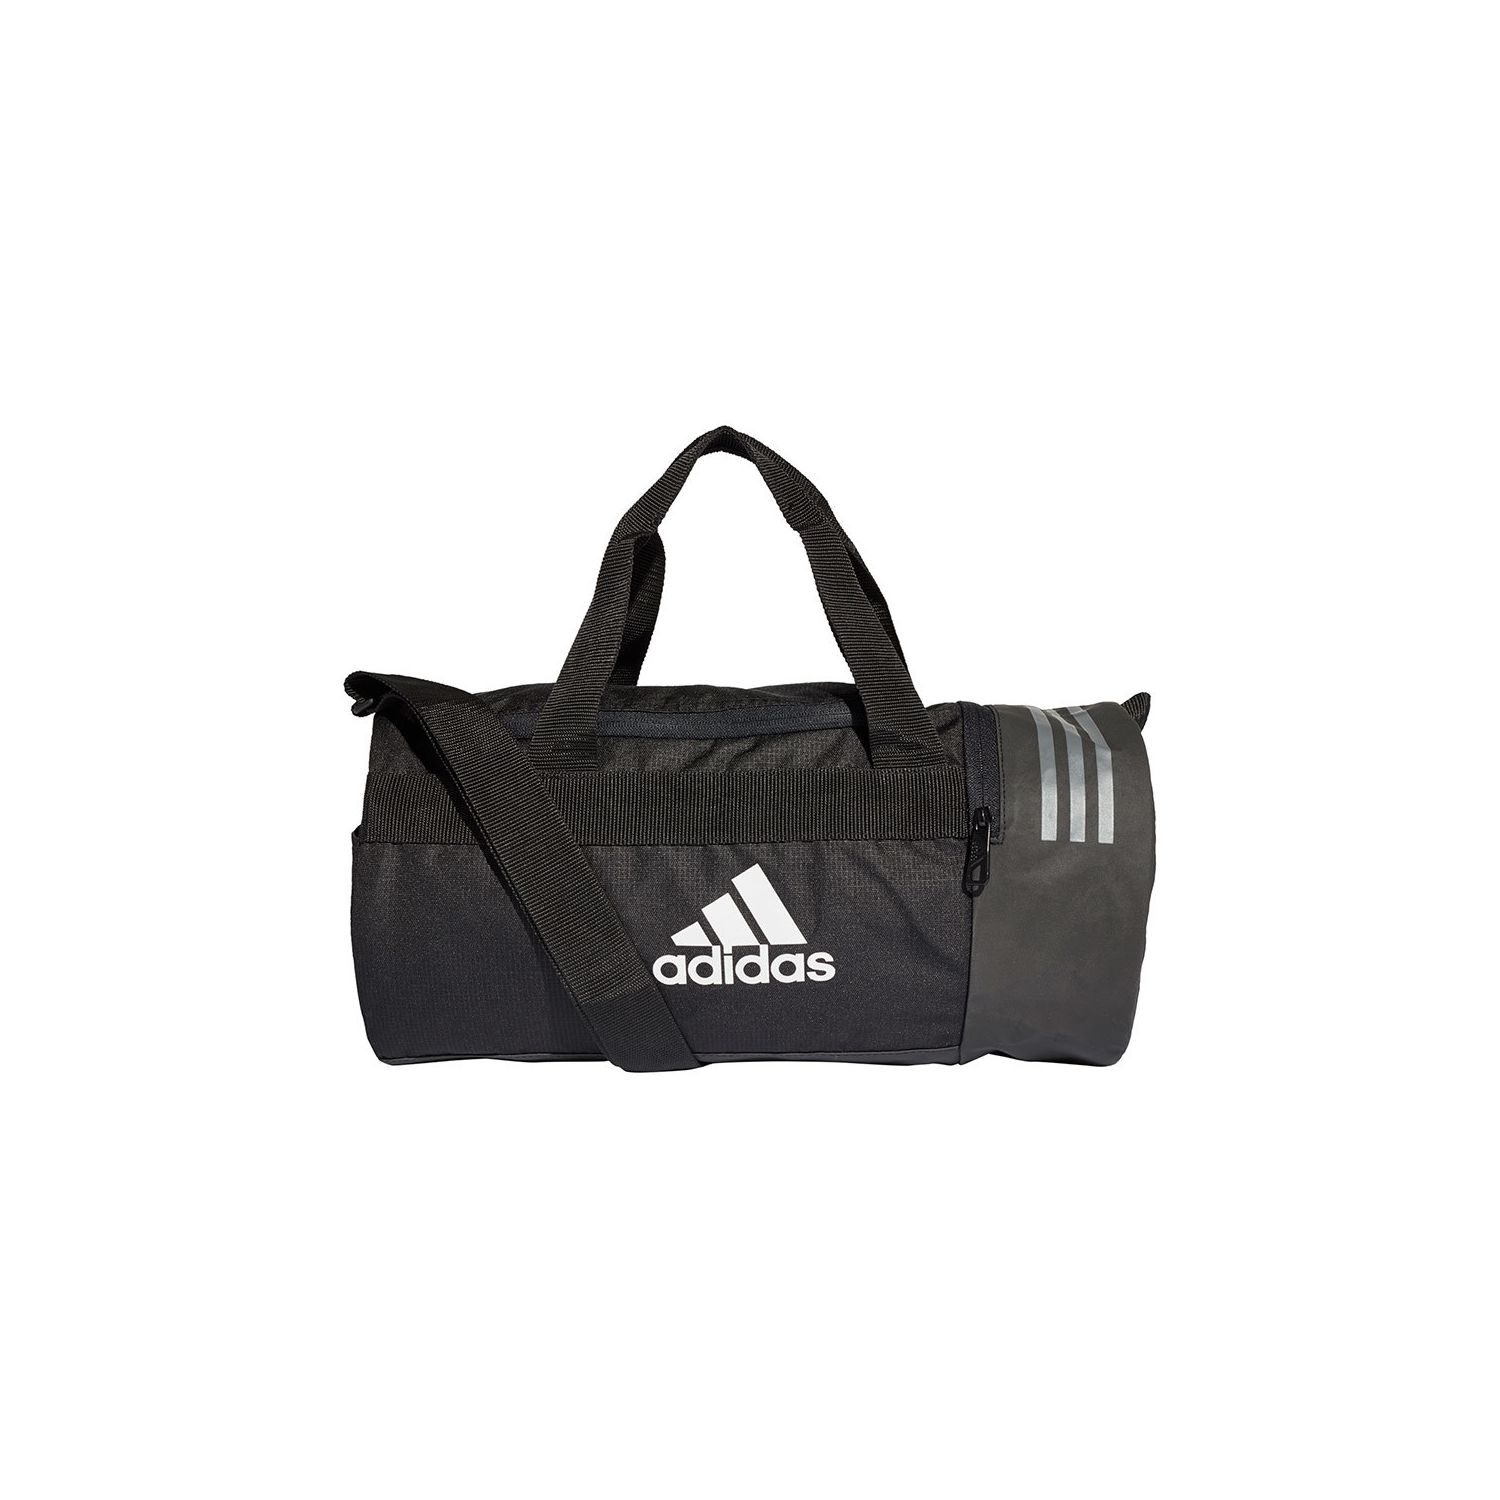 7291784280cd6 Adidas - Sac New Training Core Teambag Xs noir blanc Multicolour ...